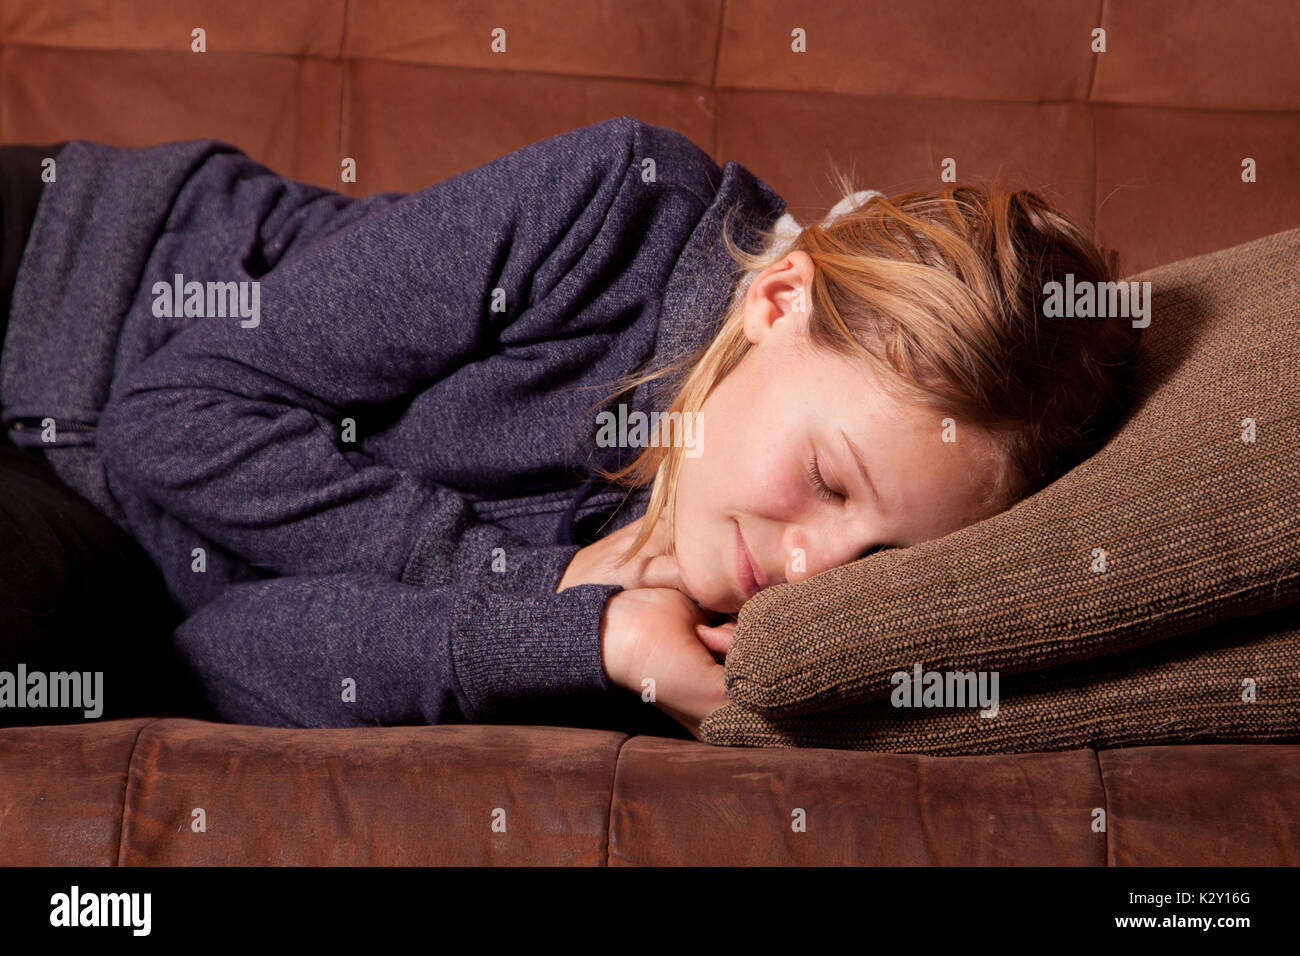 Female teenager sleeping on a sofa or couch. - Stock Image